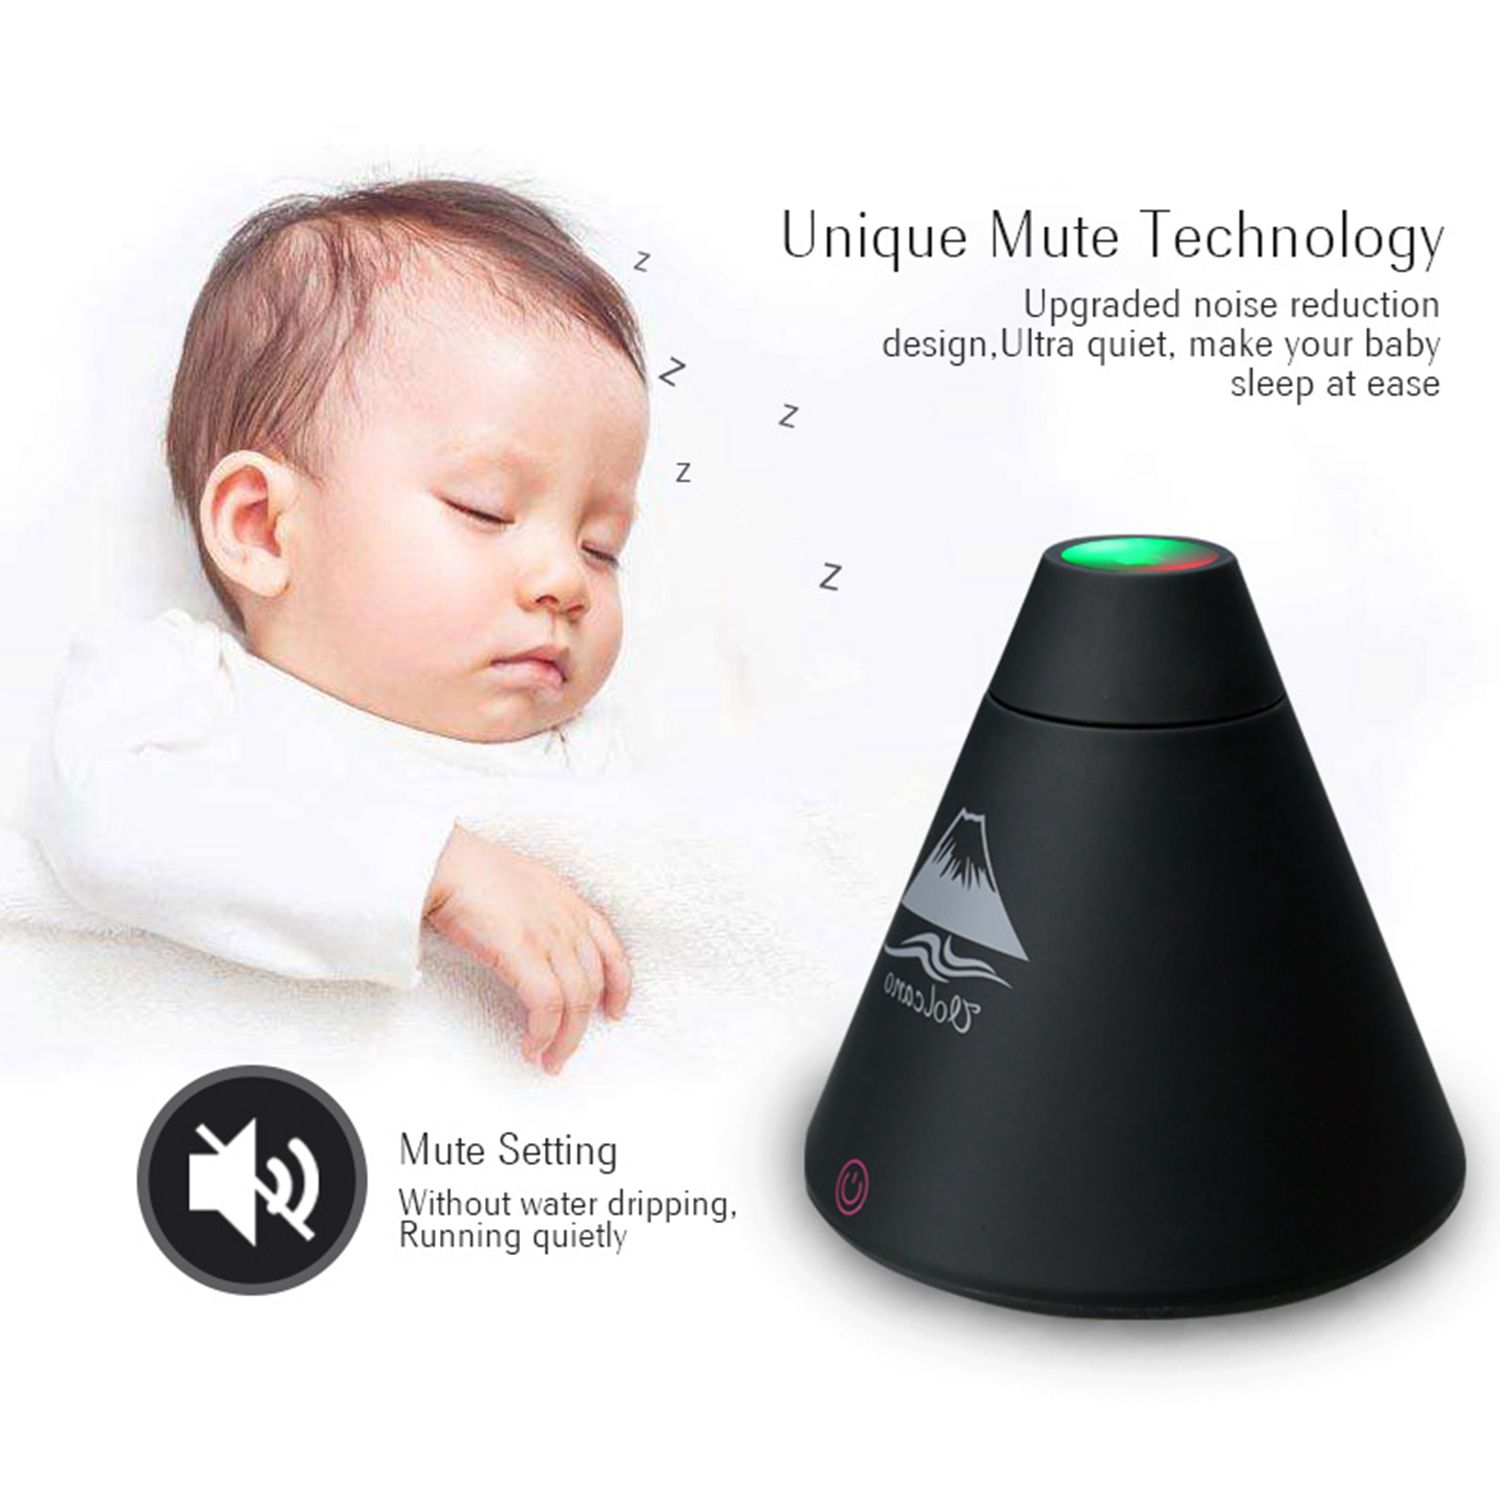 Humidificador Aroma Diffuser Volcano USB Ultrasonic Air Humidifier for Home Led Light Essential Oil Diffuser Huile Essentiel